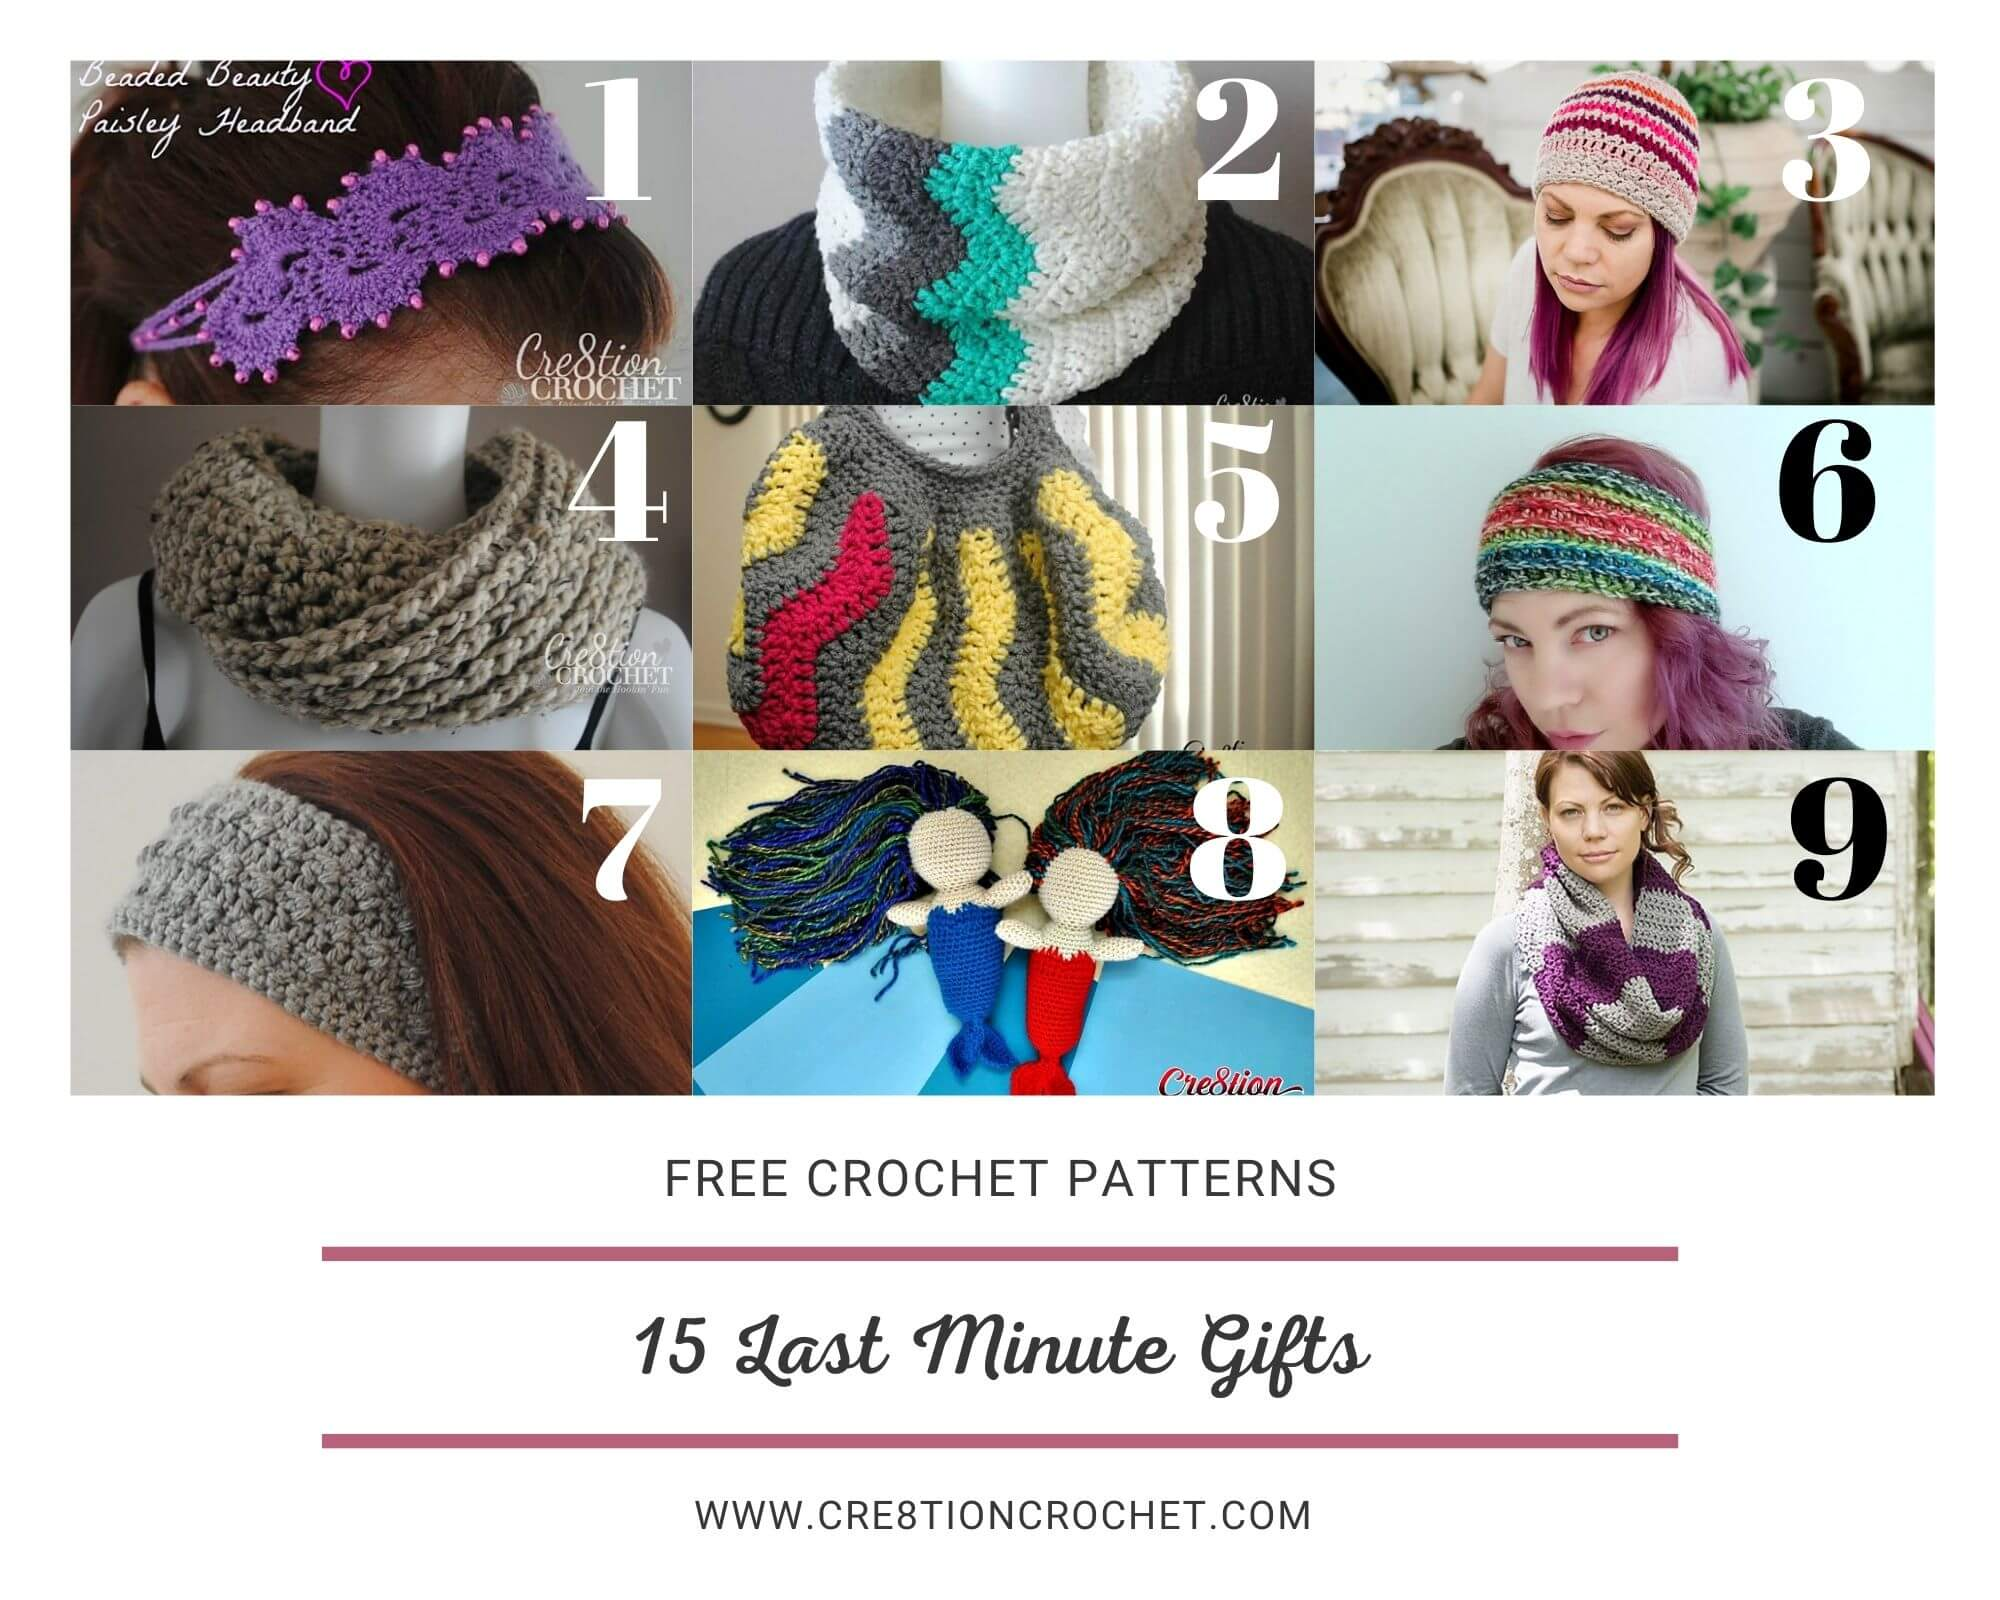 15 Last Minute Gifts - Free Crochet Patterns 3